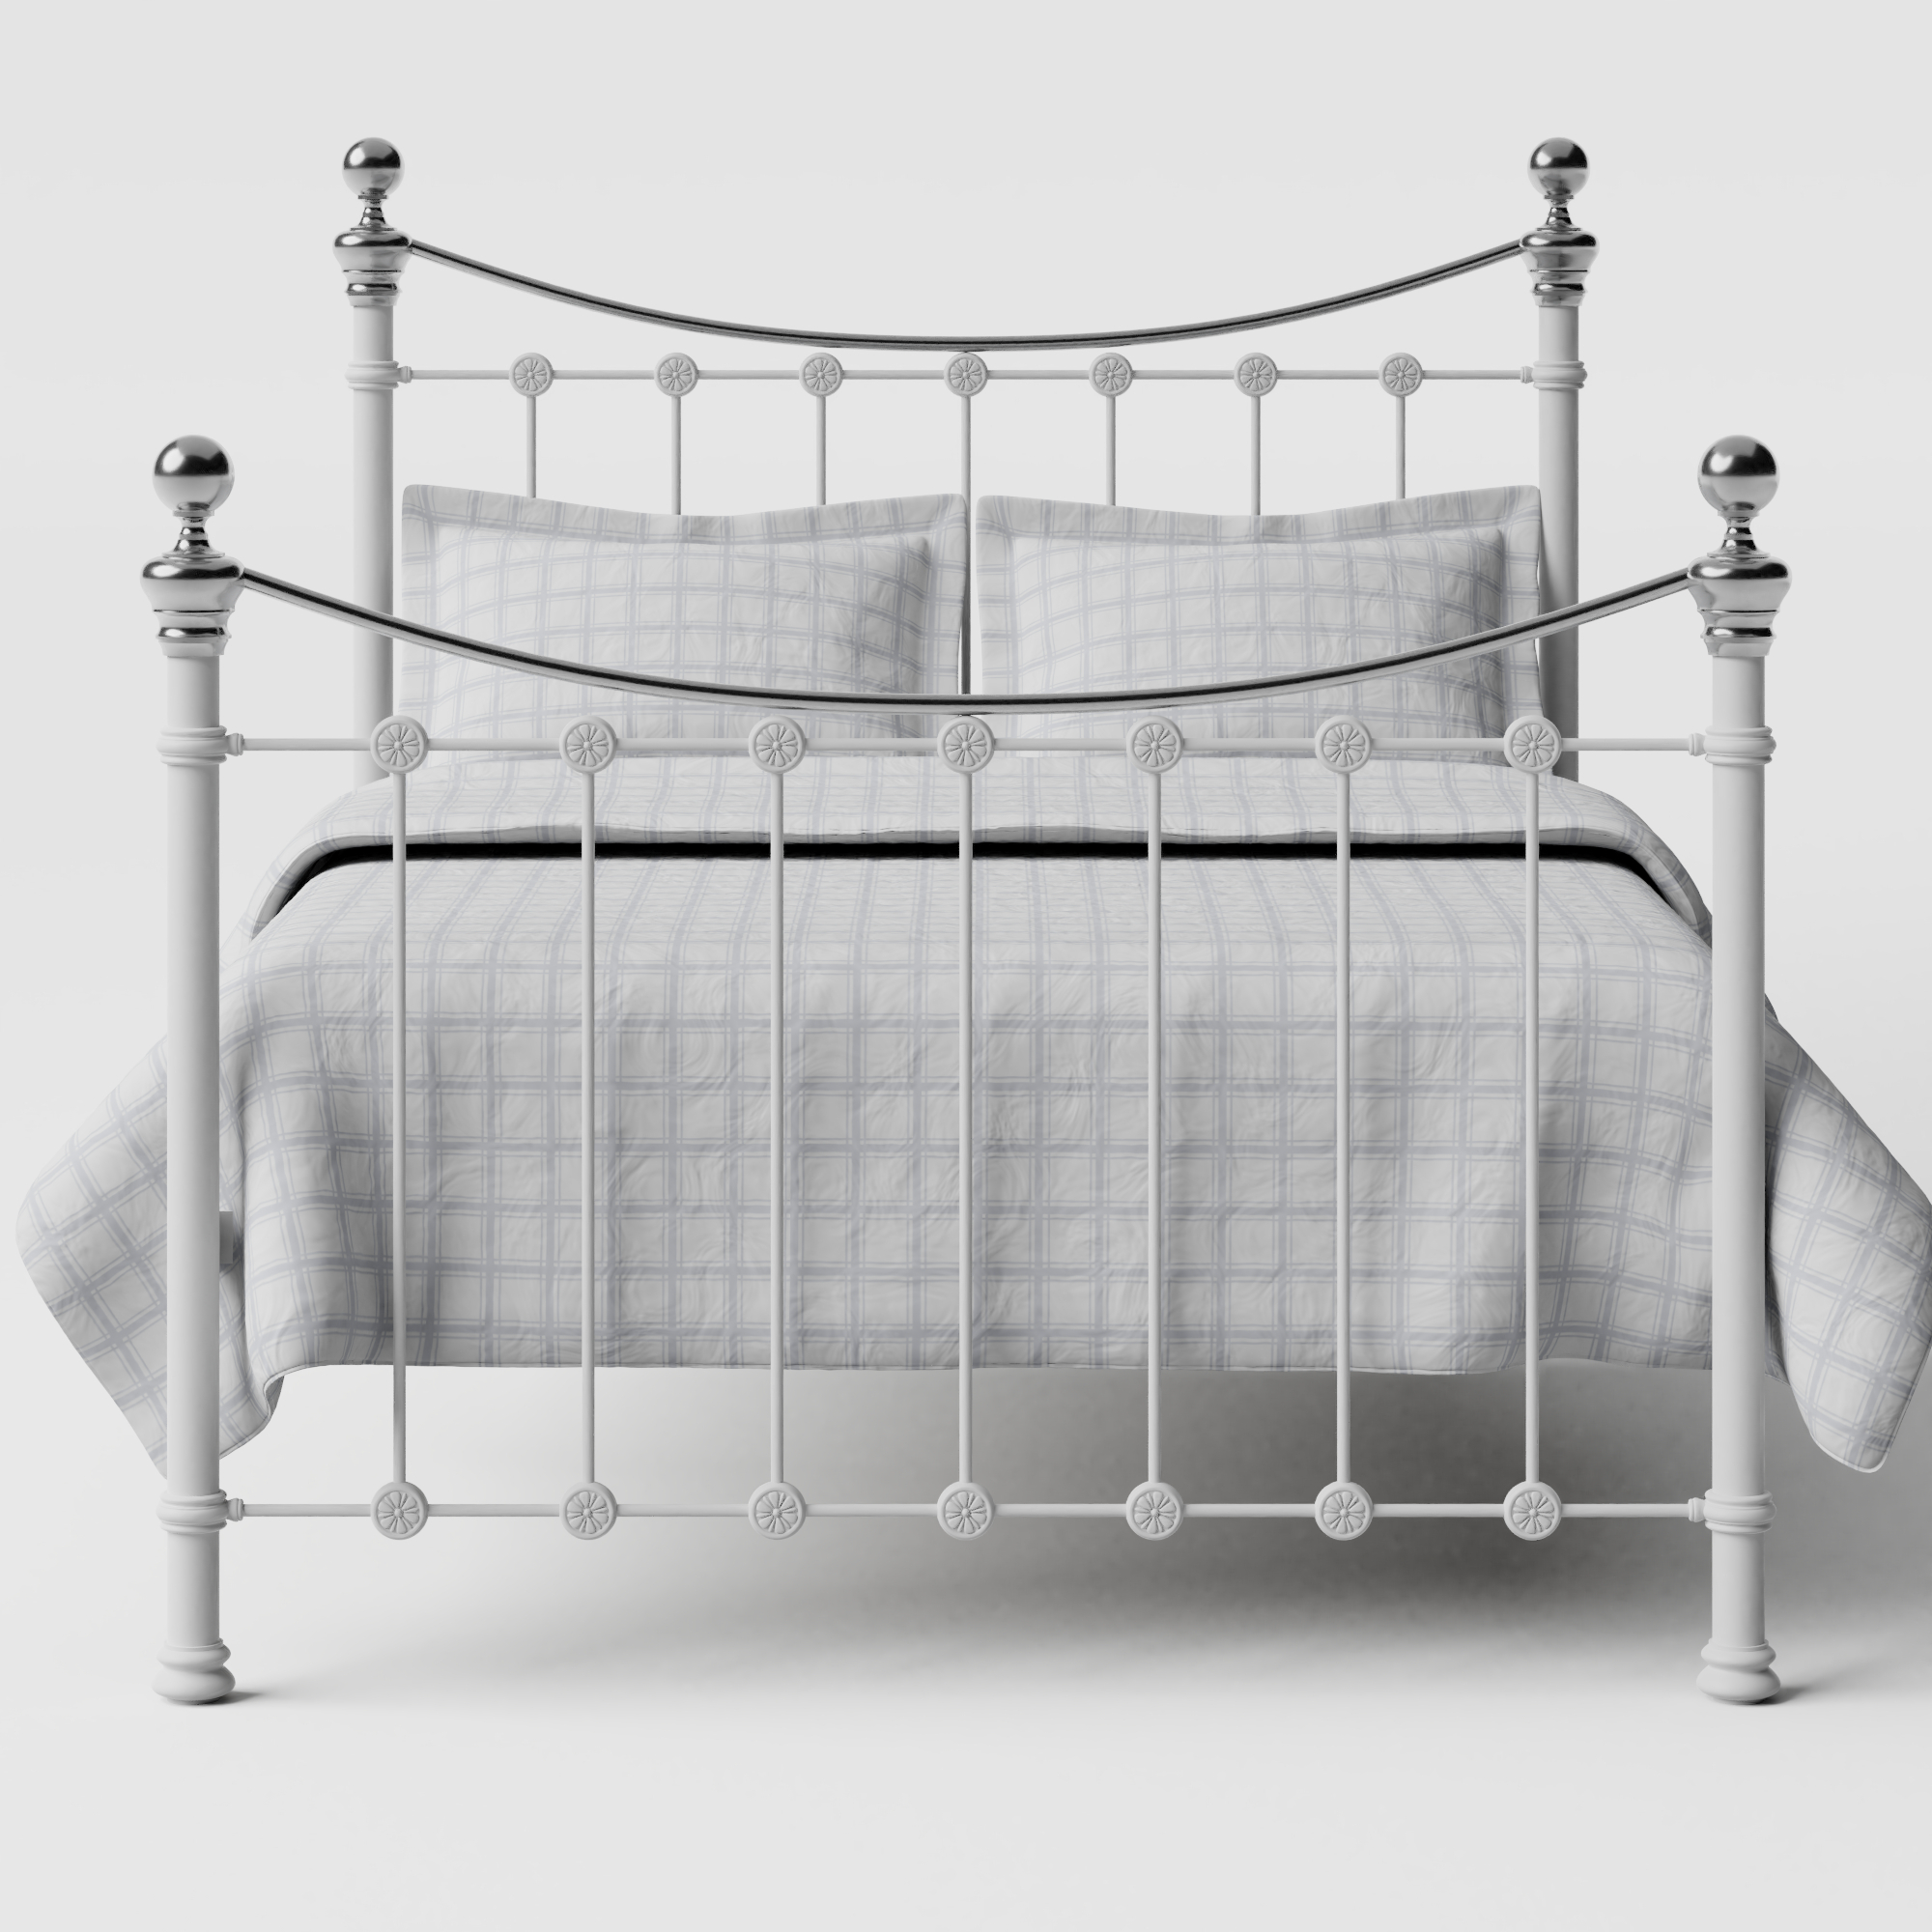 Selkirk Chromo iron/metal bed in white